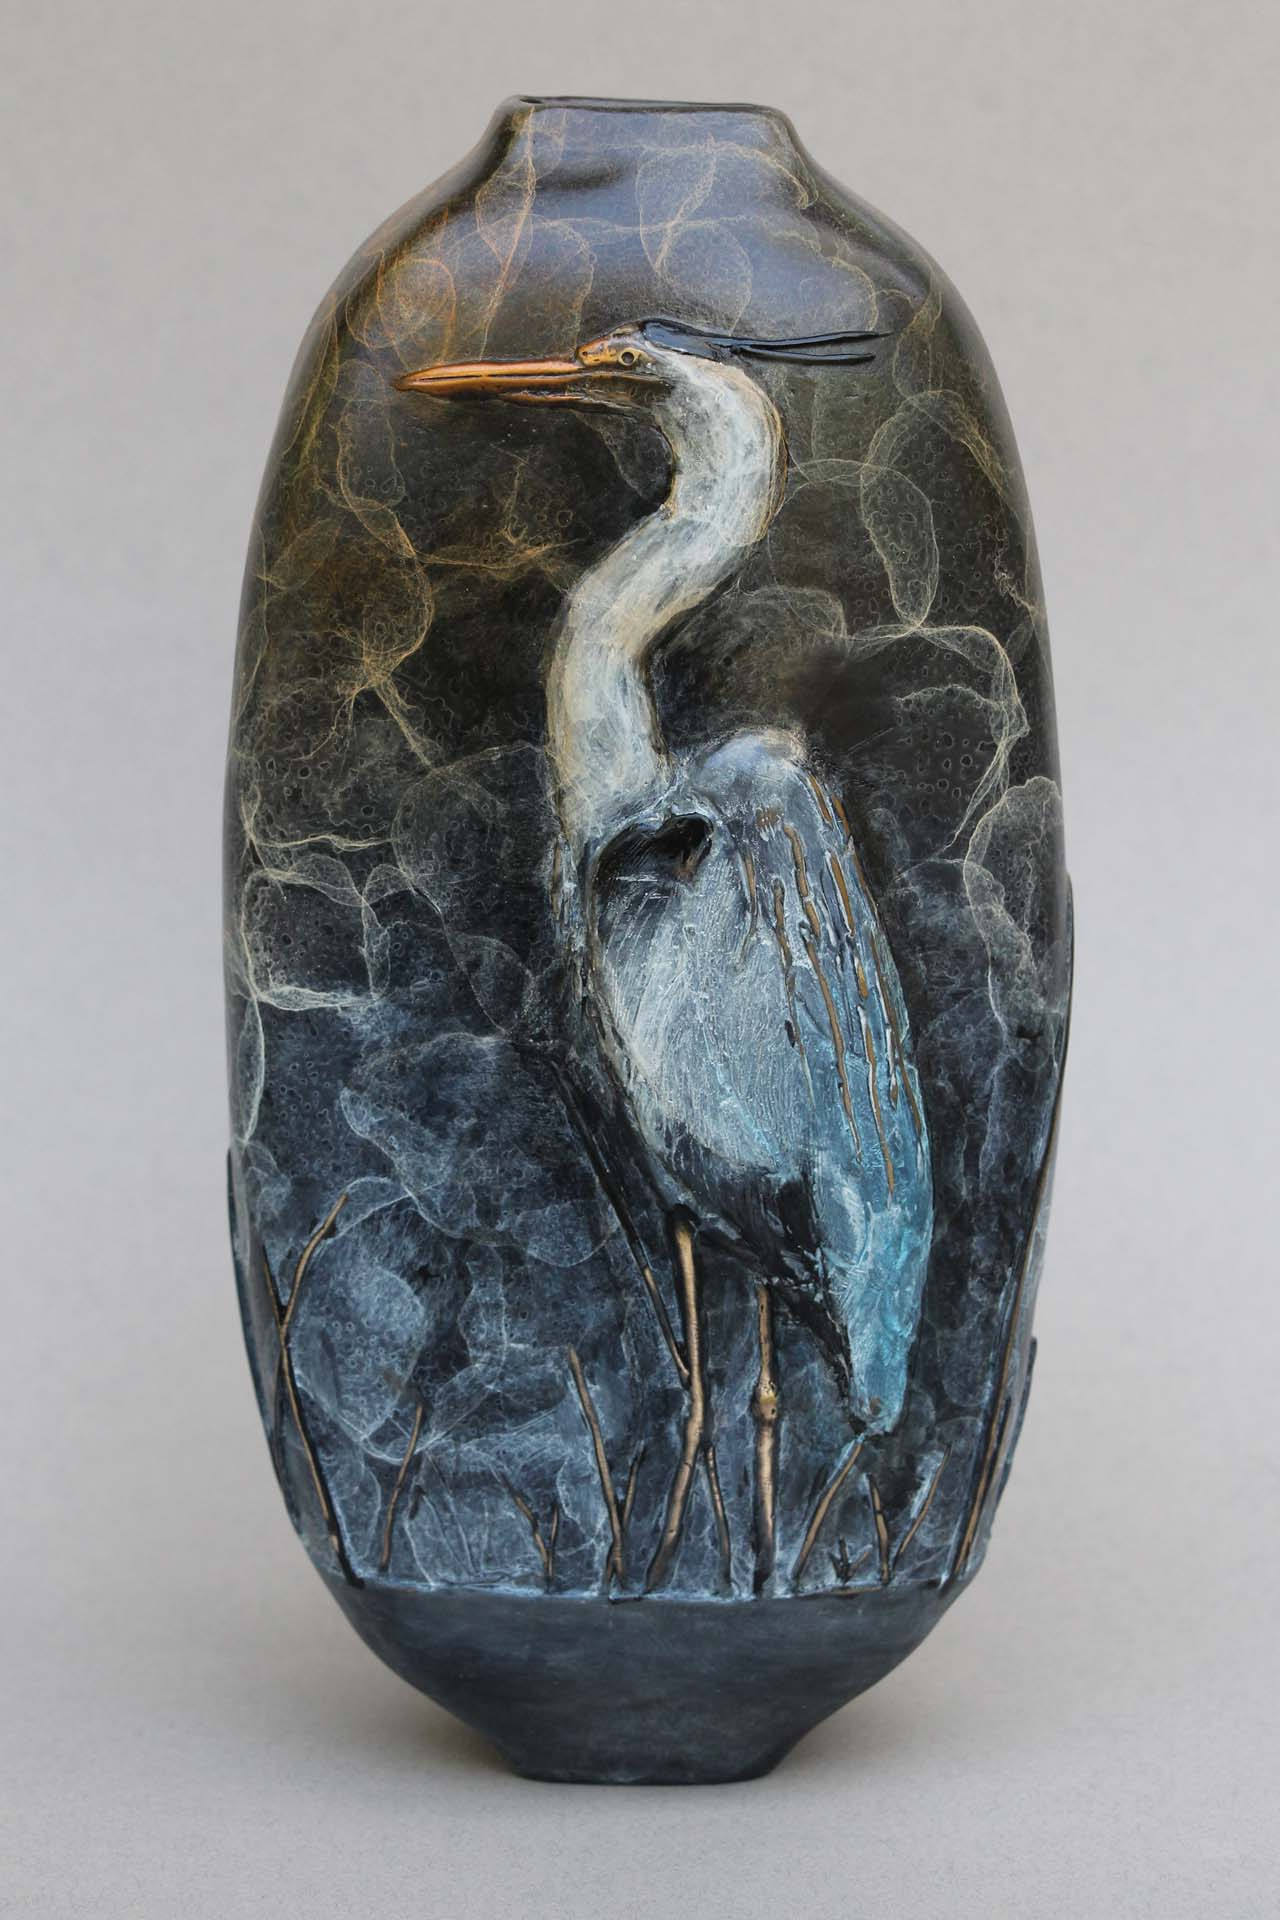 Side 1 of the Great Blue Heron vase. The Blue Heron standing at attention.